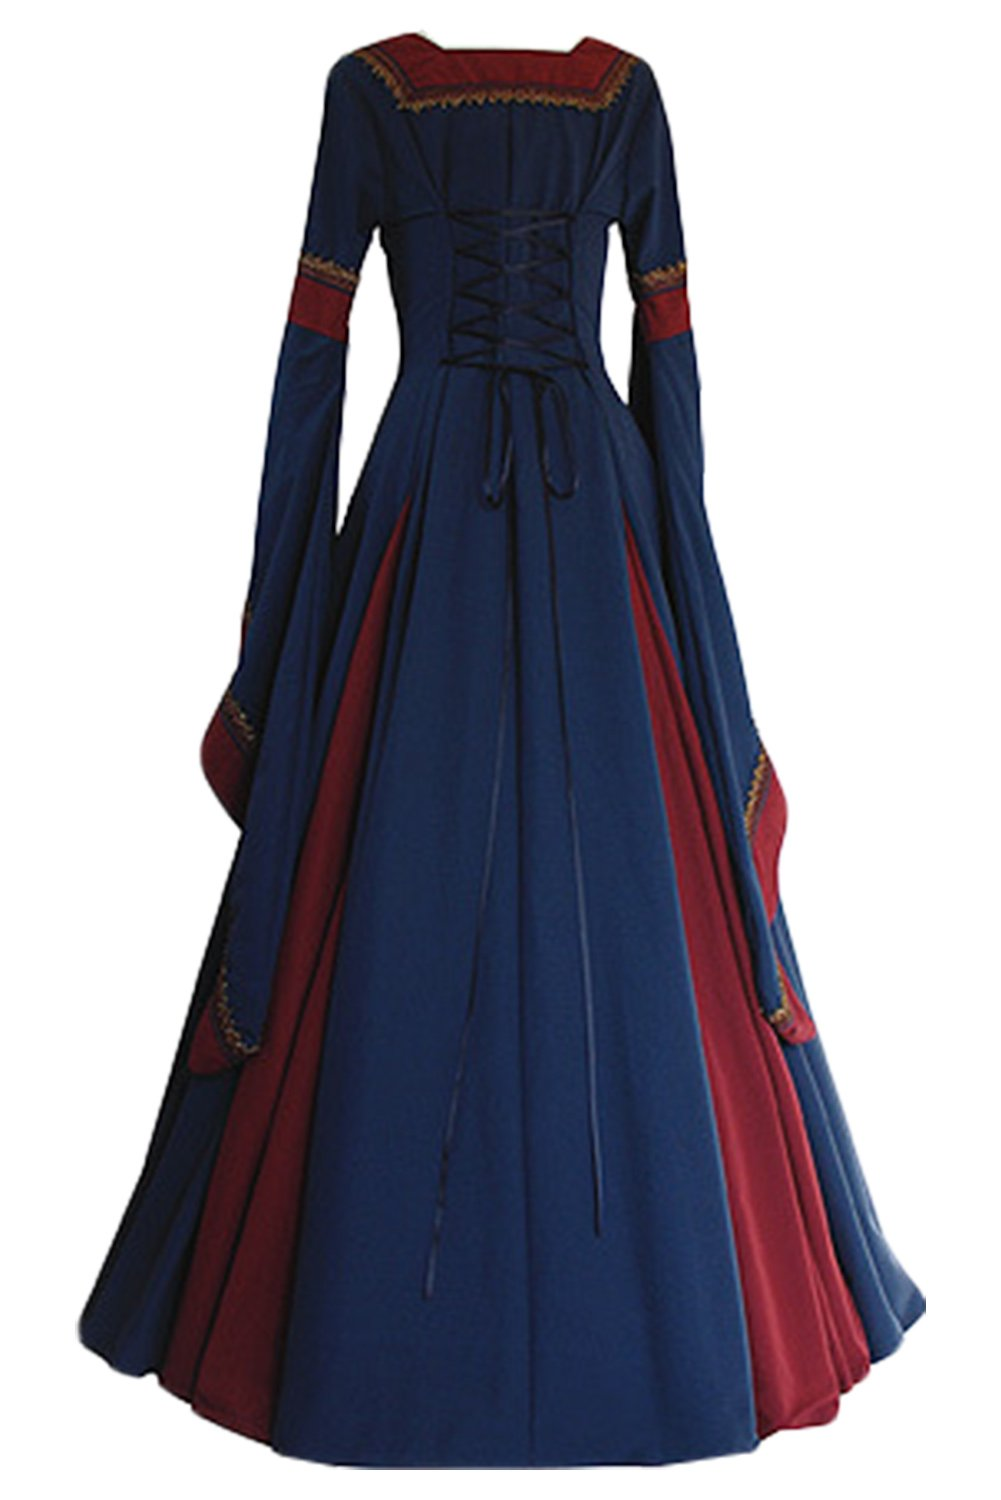 Amazon.com: COSMOVIE Womens Medieval Dress Gothic Long Sleeved Victorian Dress Lace up Floor Length Dress Halloween Cosplay Dress: Clothing